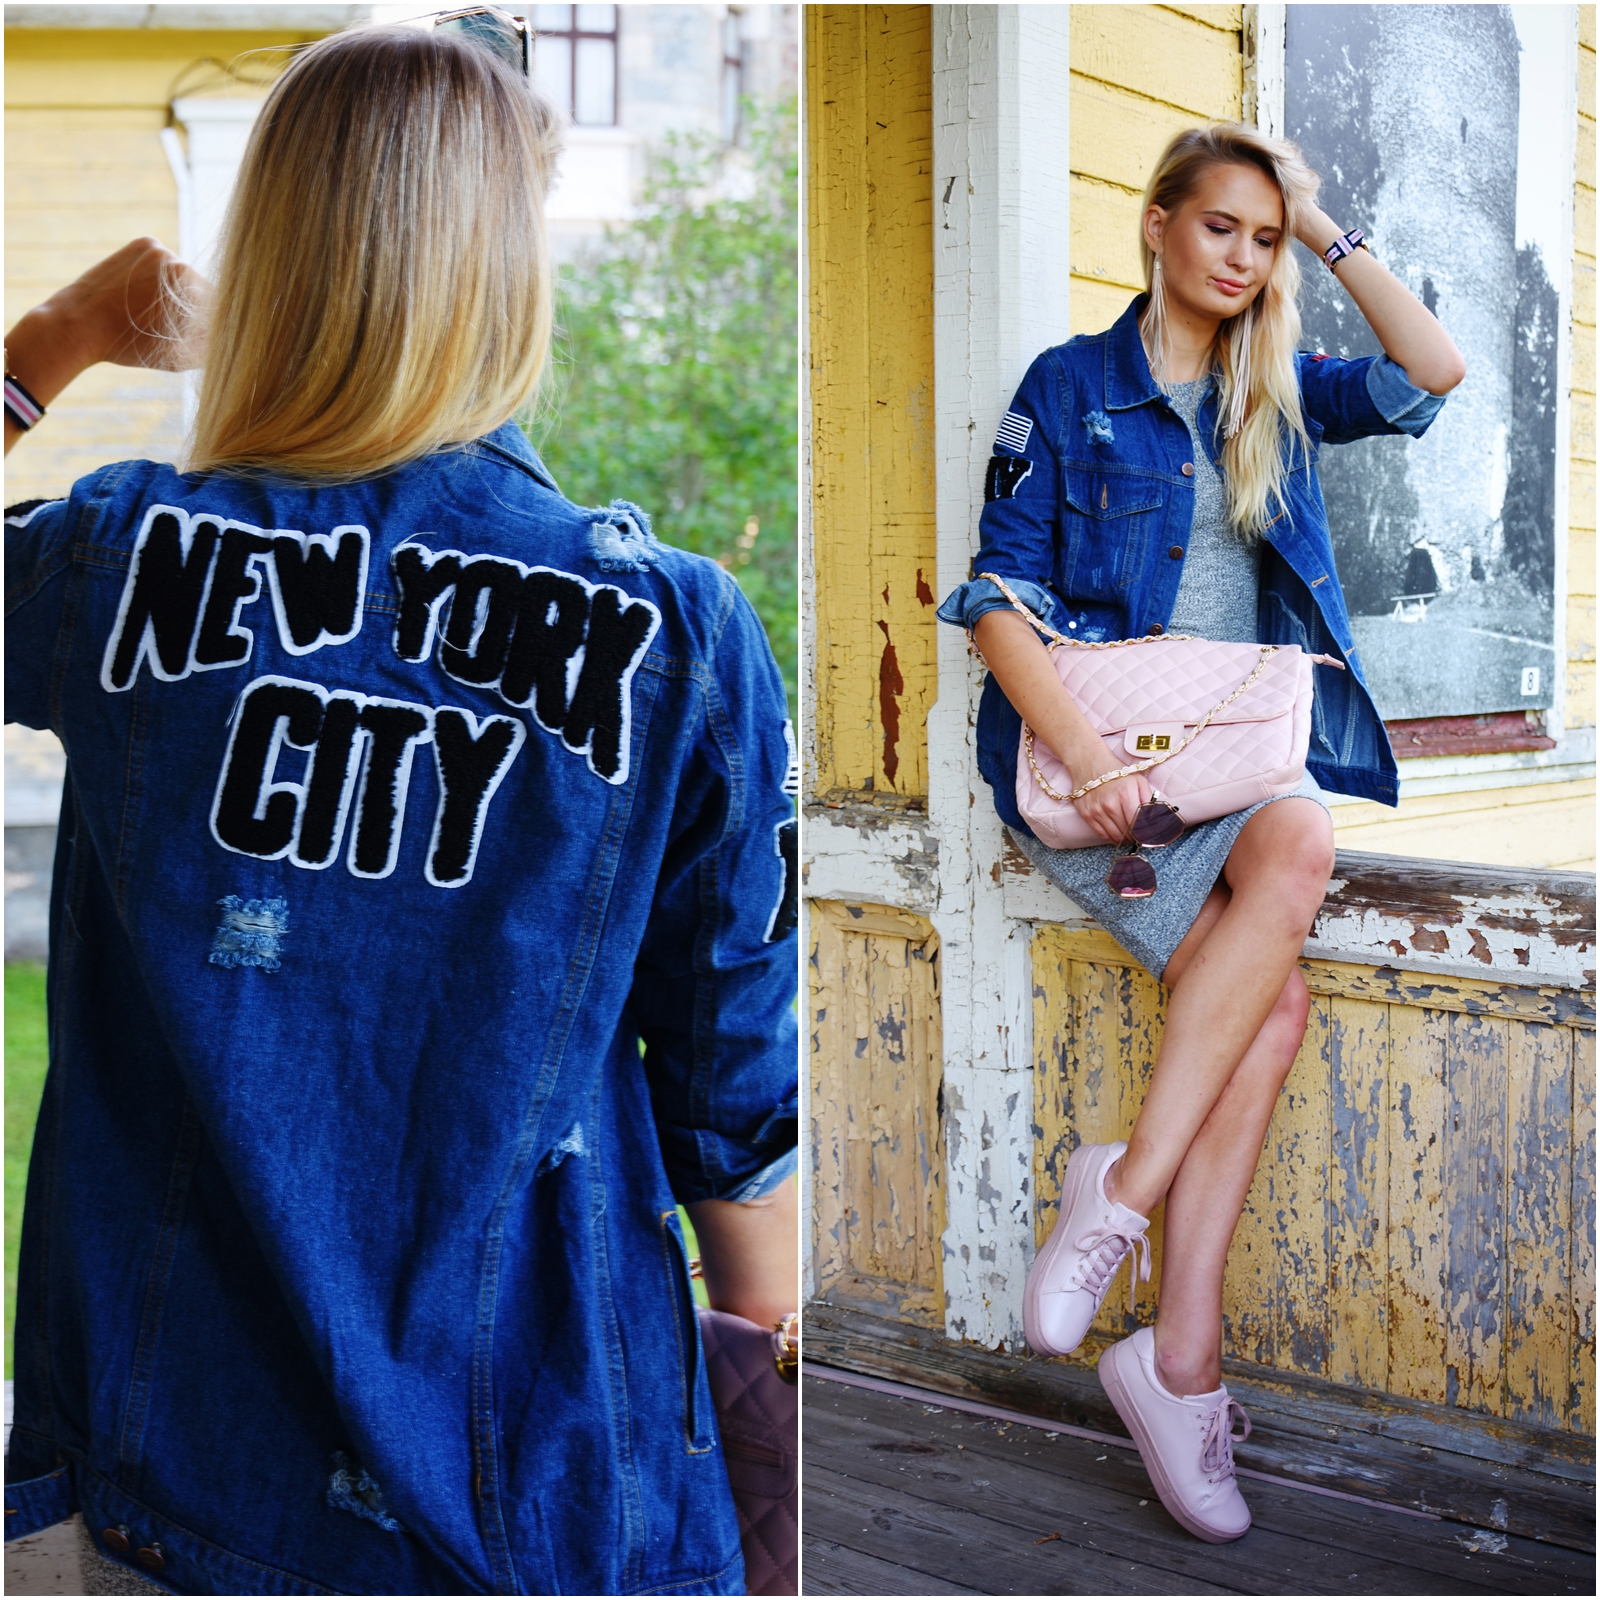 New York city denim jacket